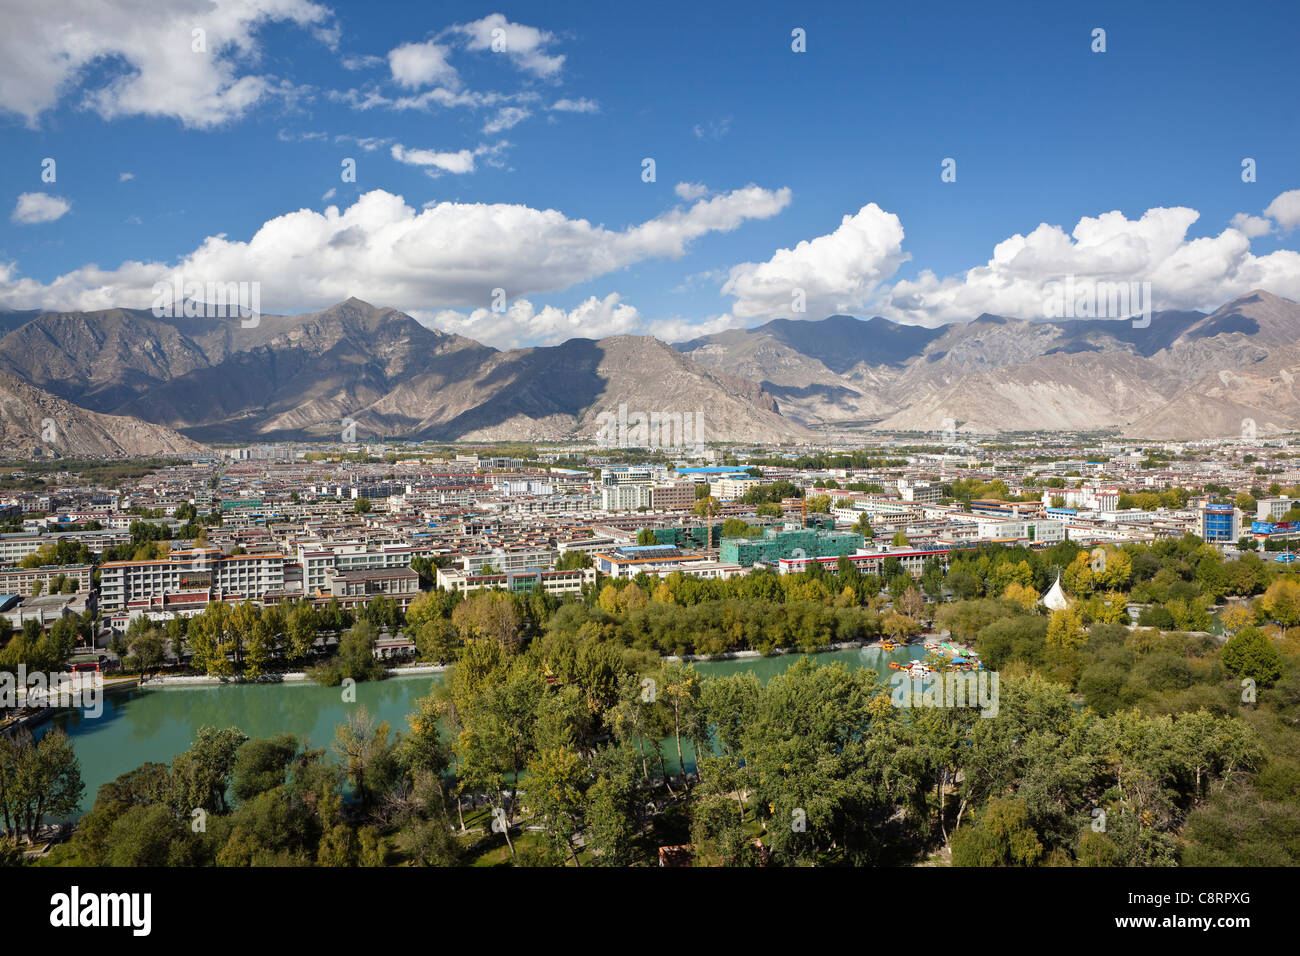 tibet: the city of lhasa - Stock Image